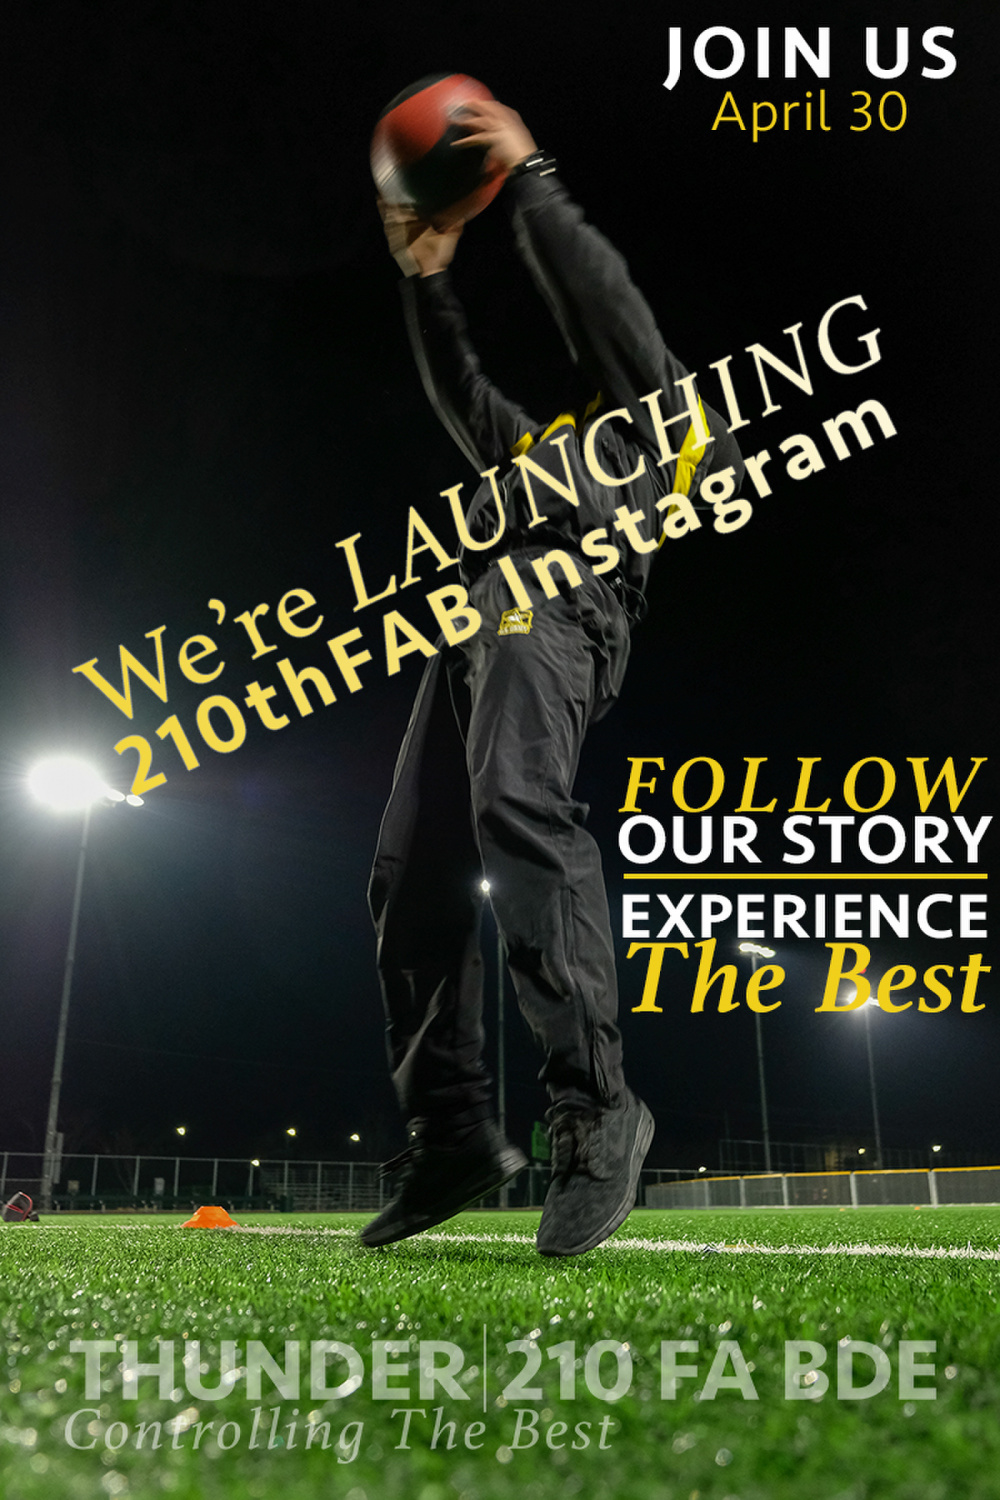 210th FAB Joins Instagram